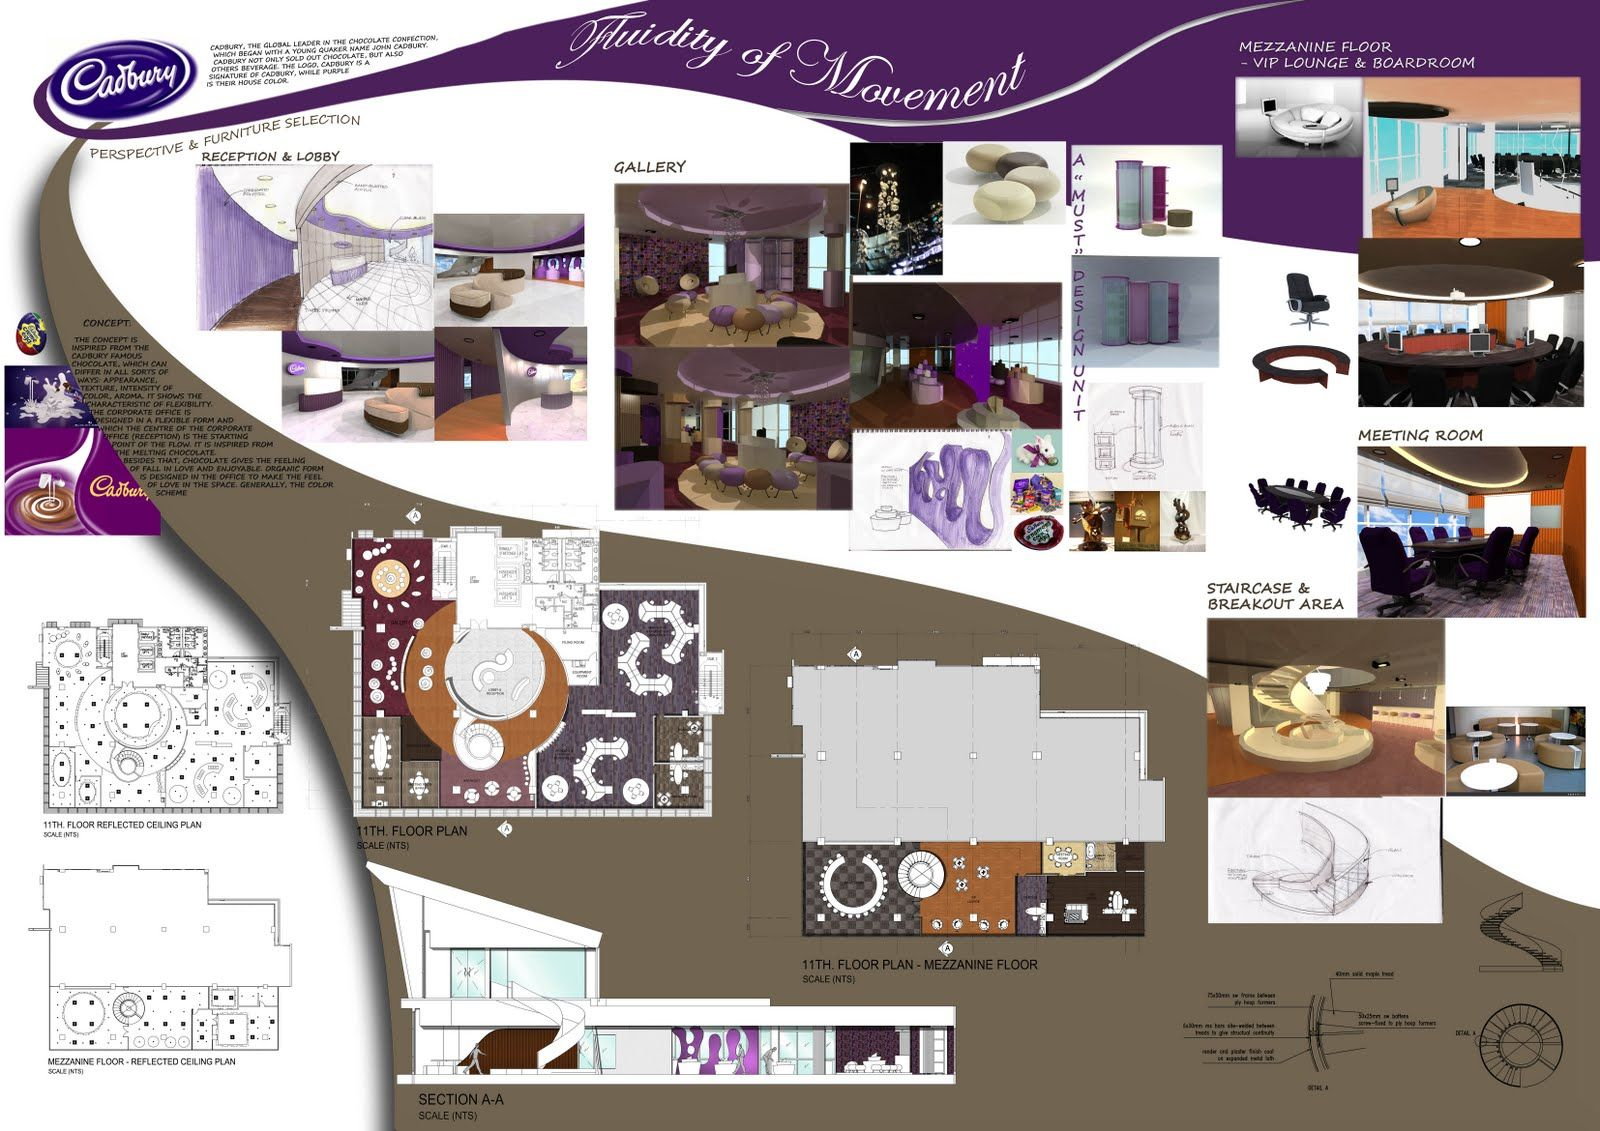 Interior design presentation board presentation boards - Interior design presentation layout ...